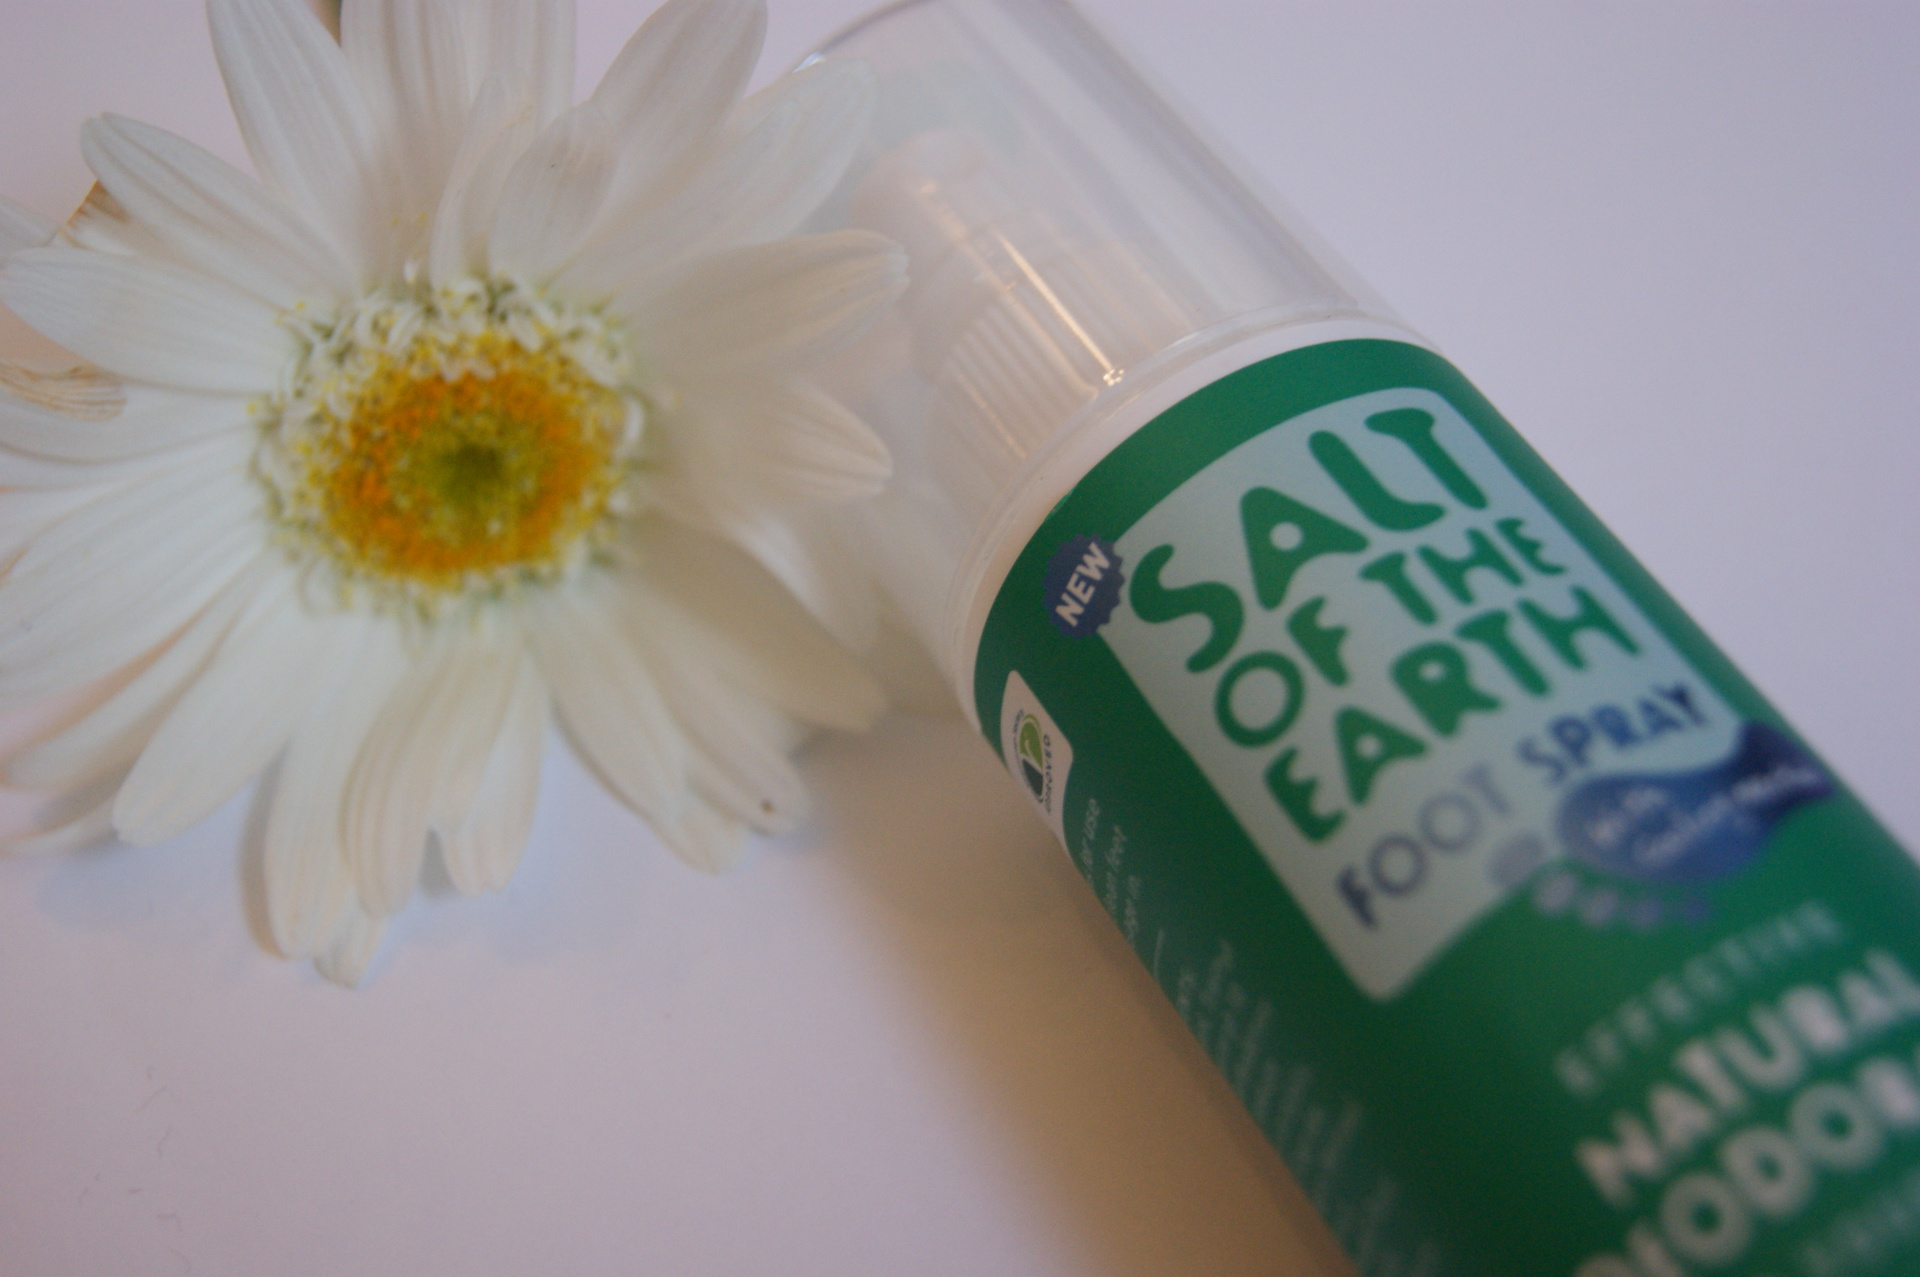 Salt of the Earth - Foot Spray